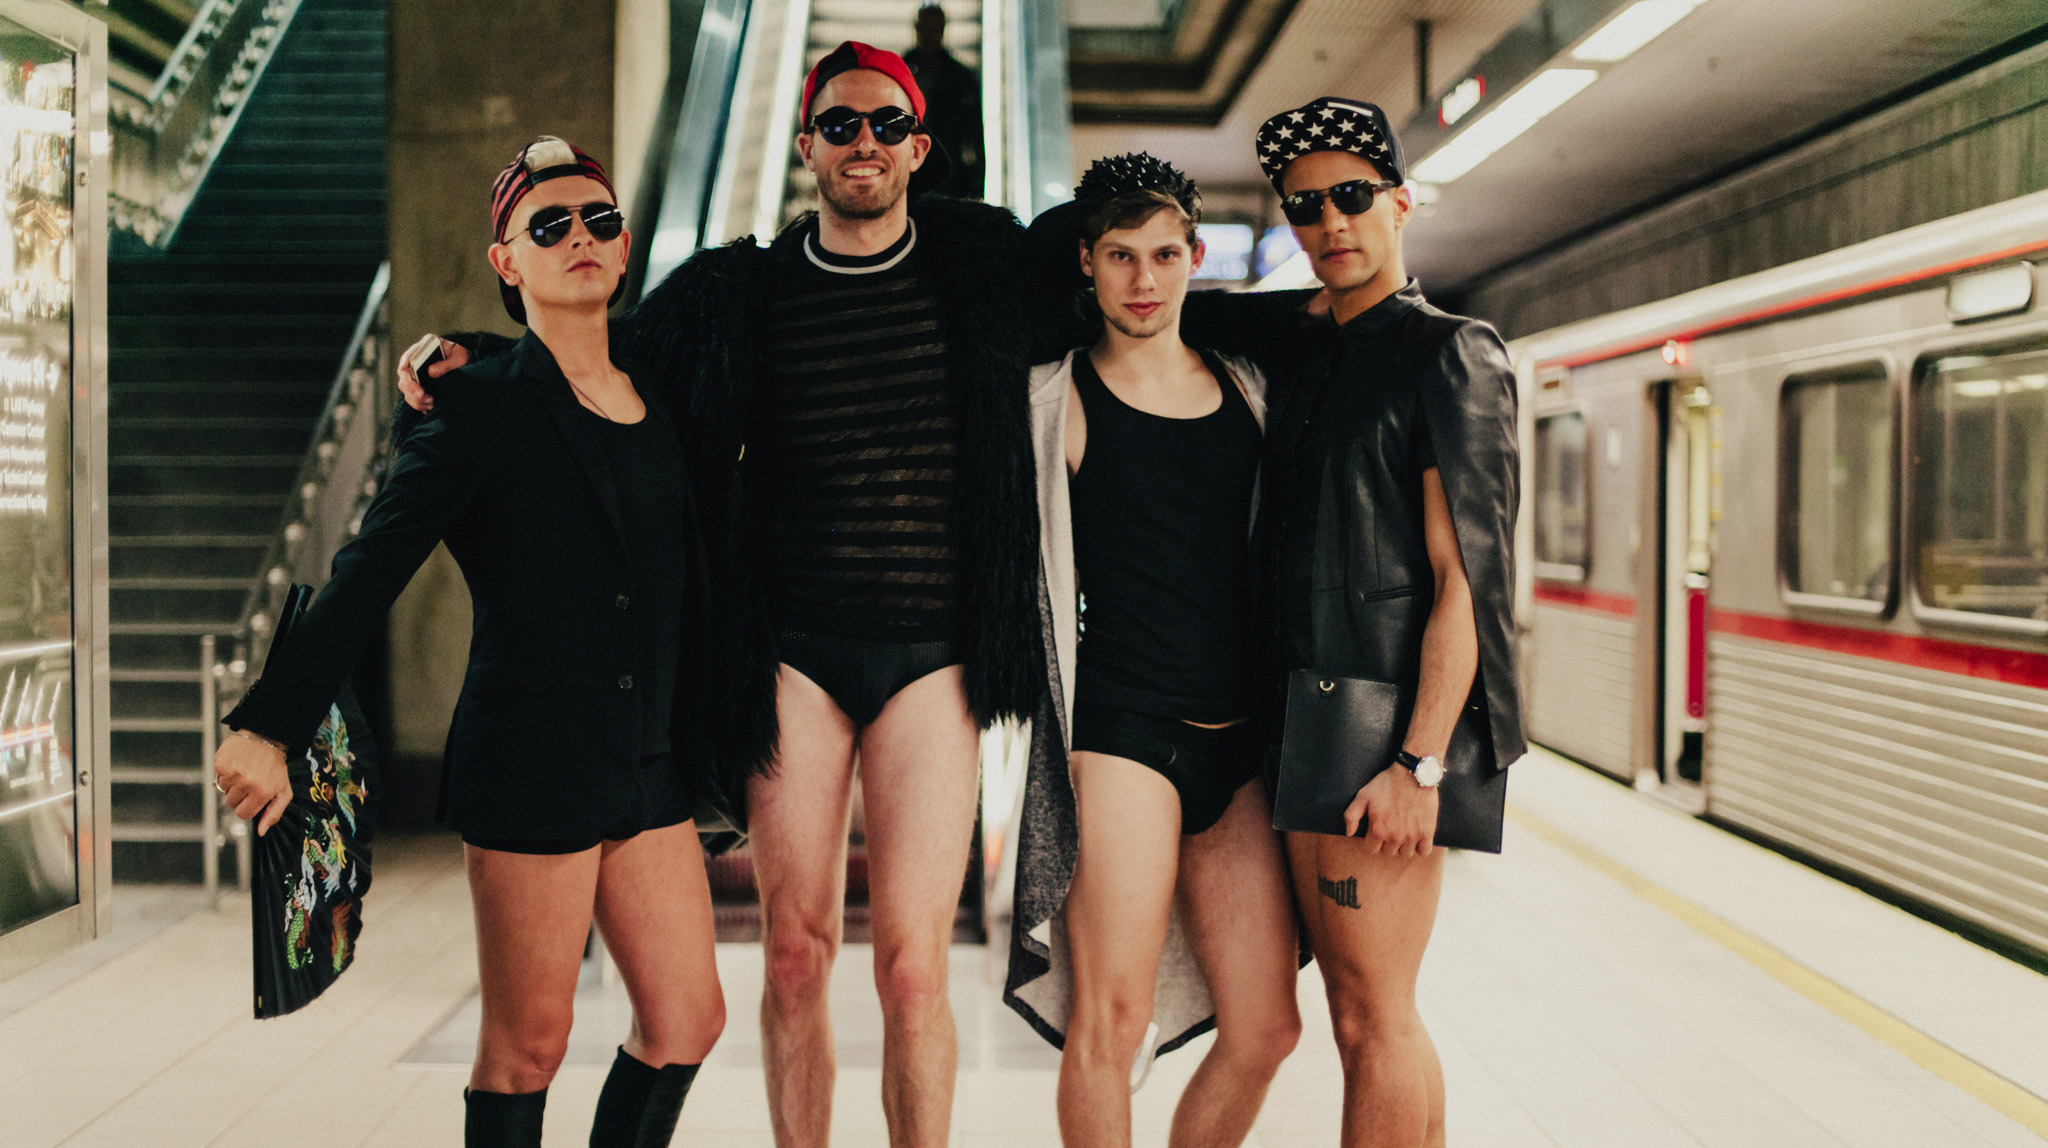 Angelenos took Metro in their underwear for No Pants Subway Ride 2017